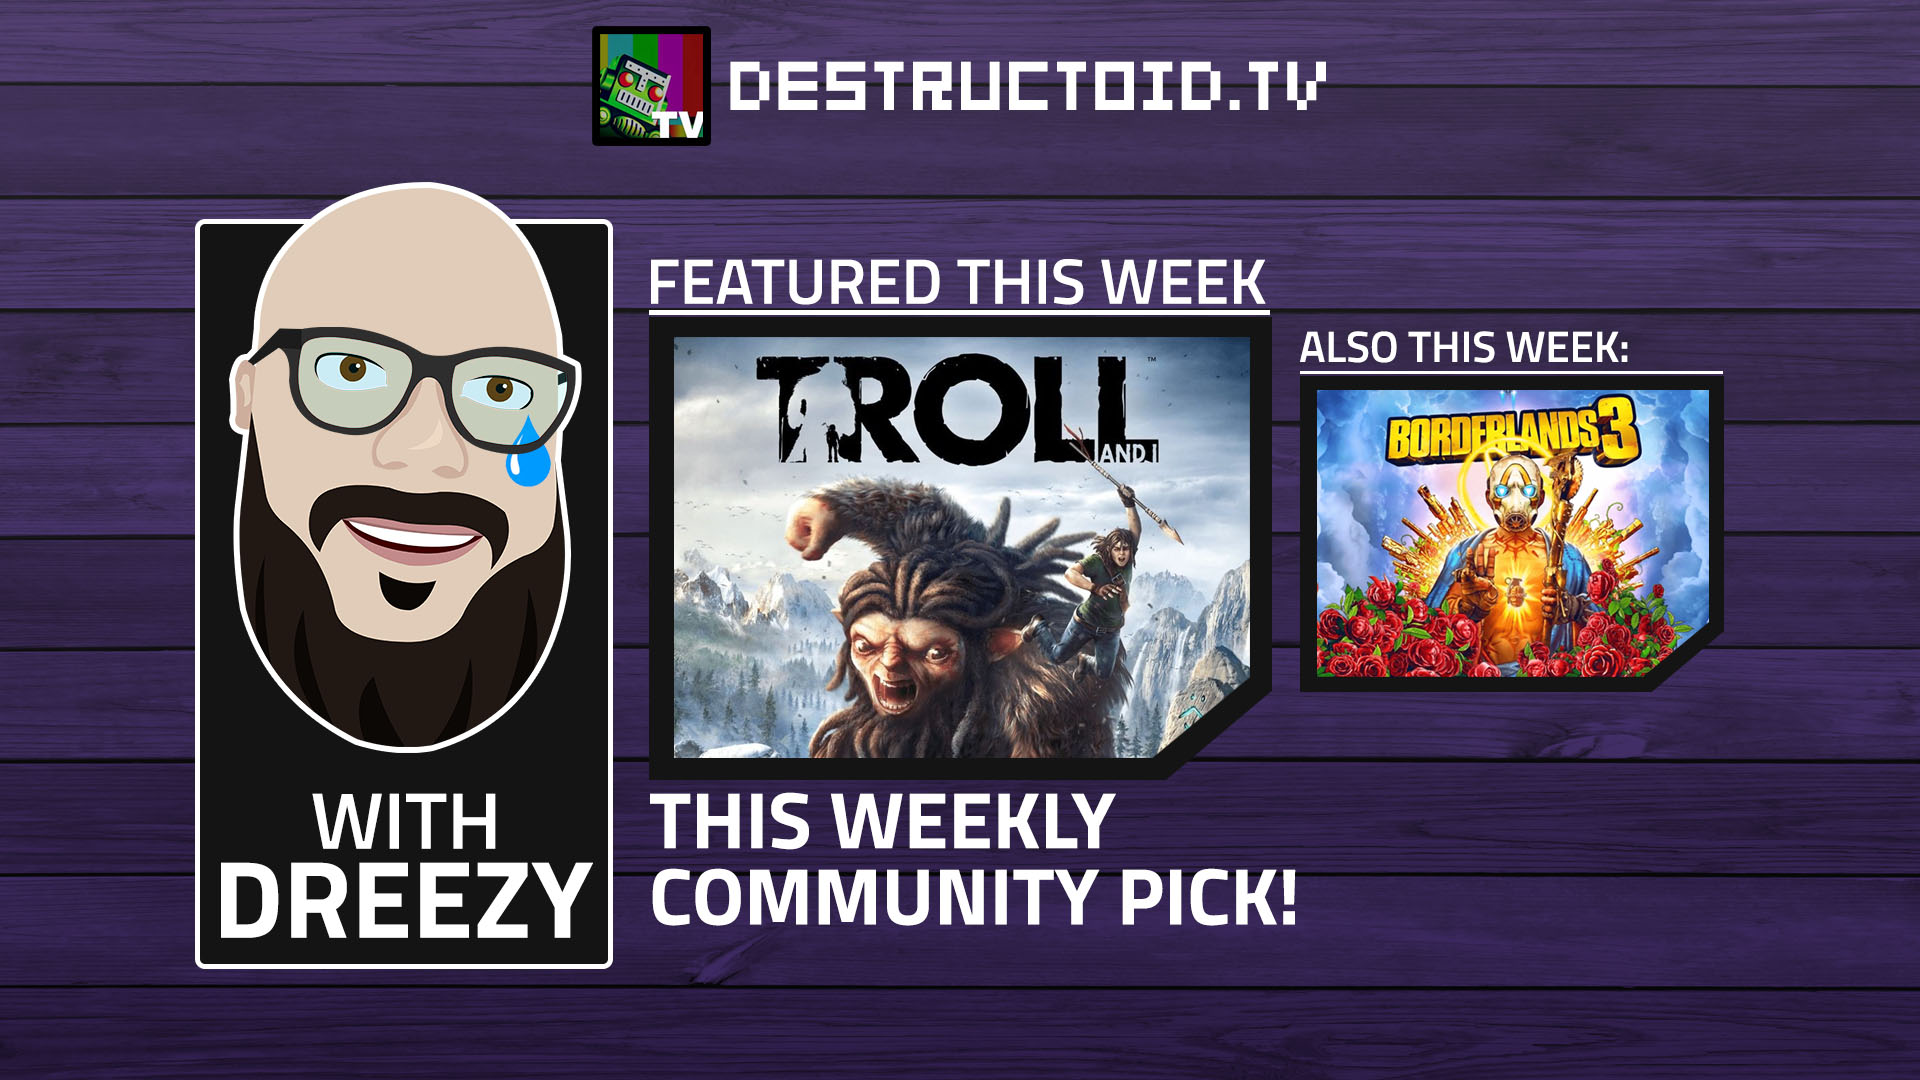 We're live again on Twitch this week with Borderlands 3 and our first community pick! screenshot